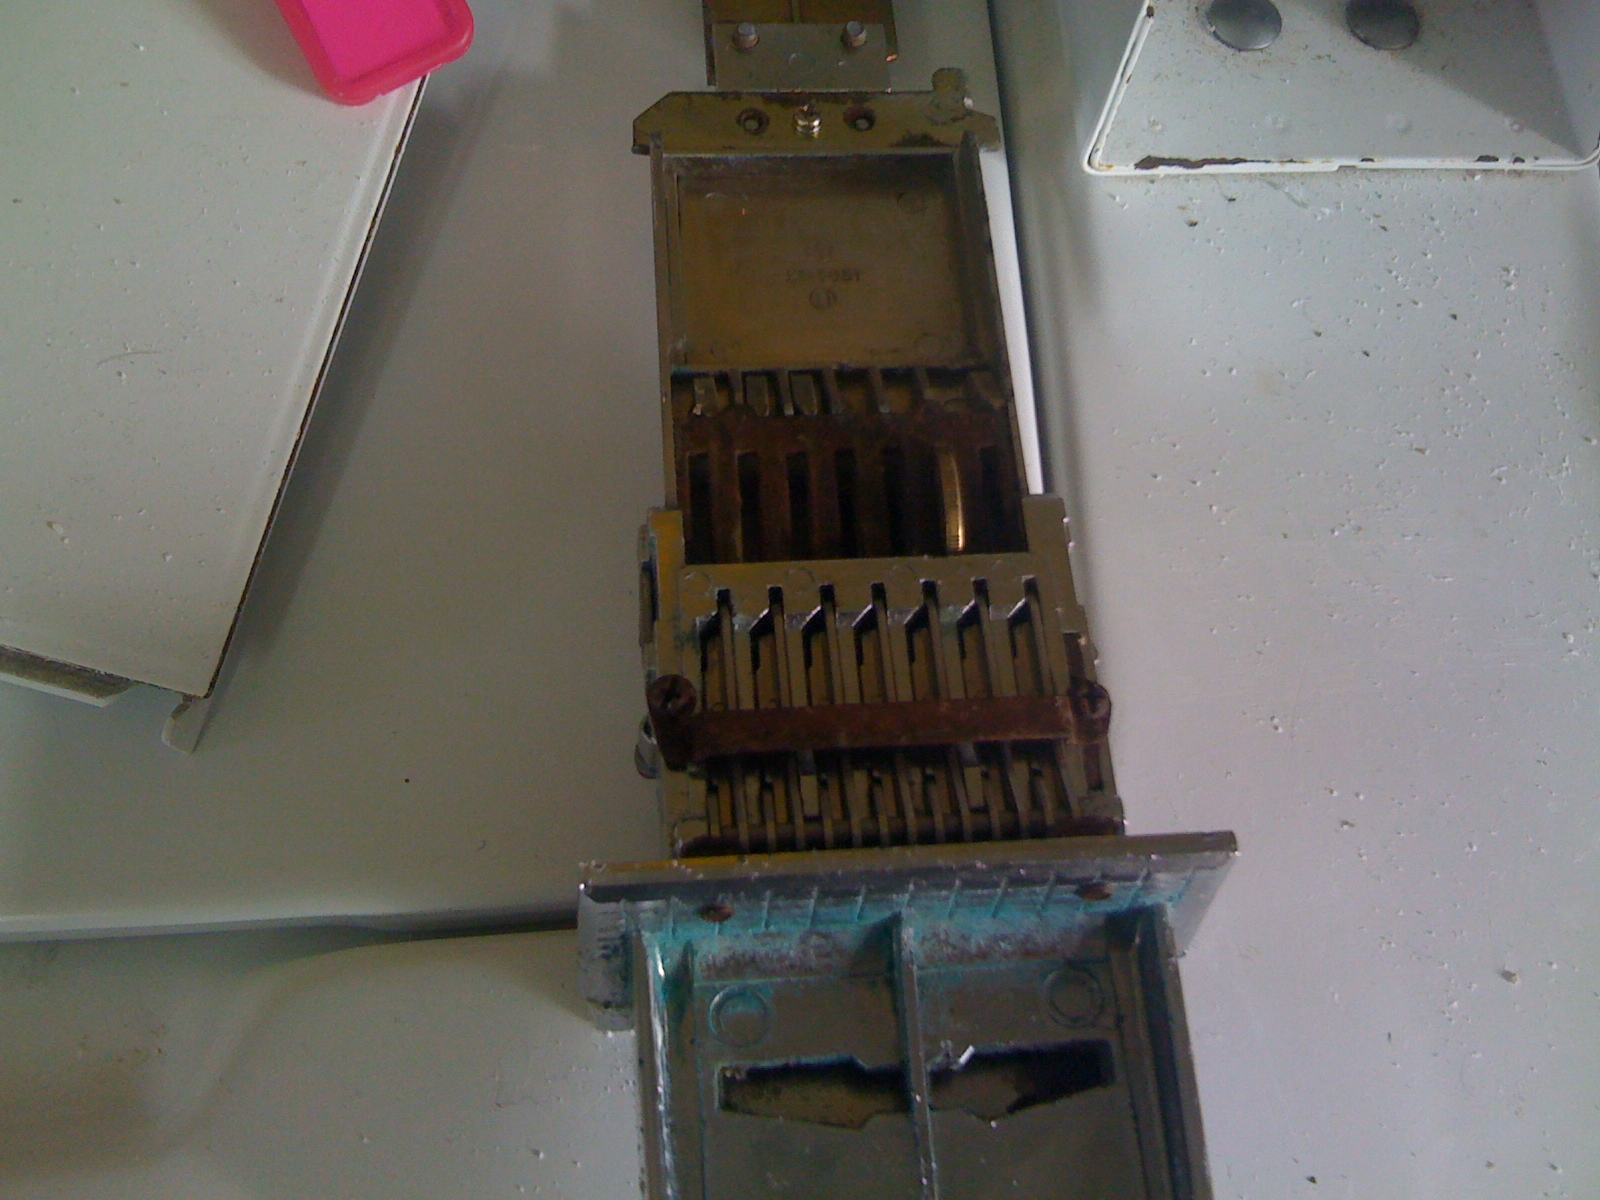 How to Repair a Jammed Coinslide